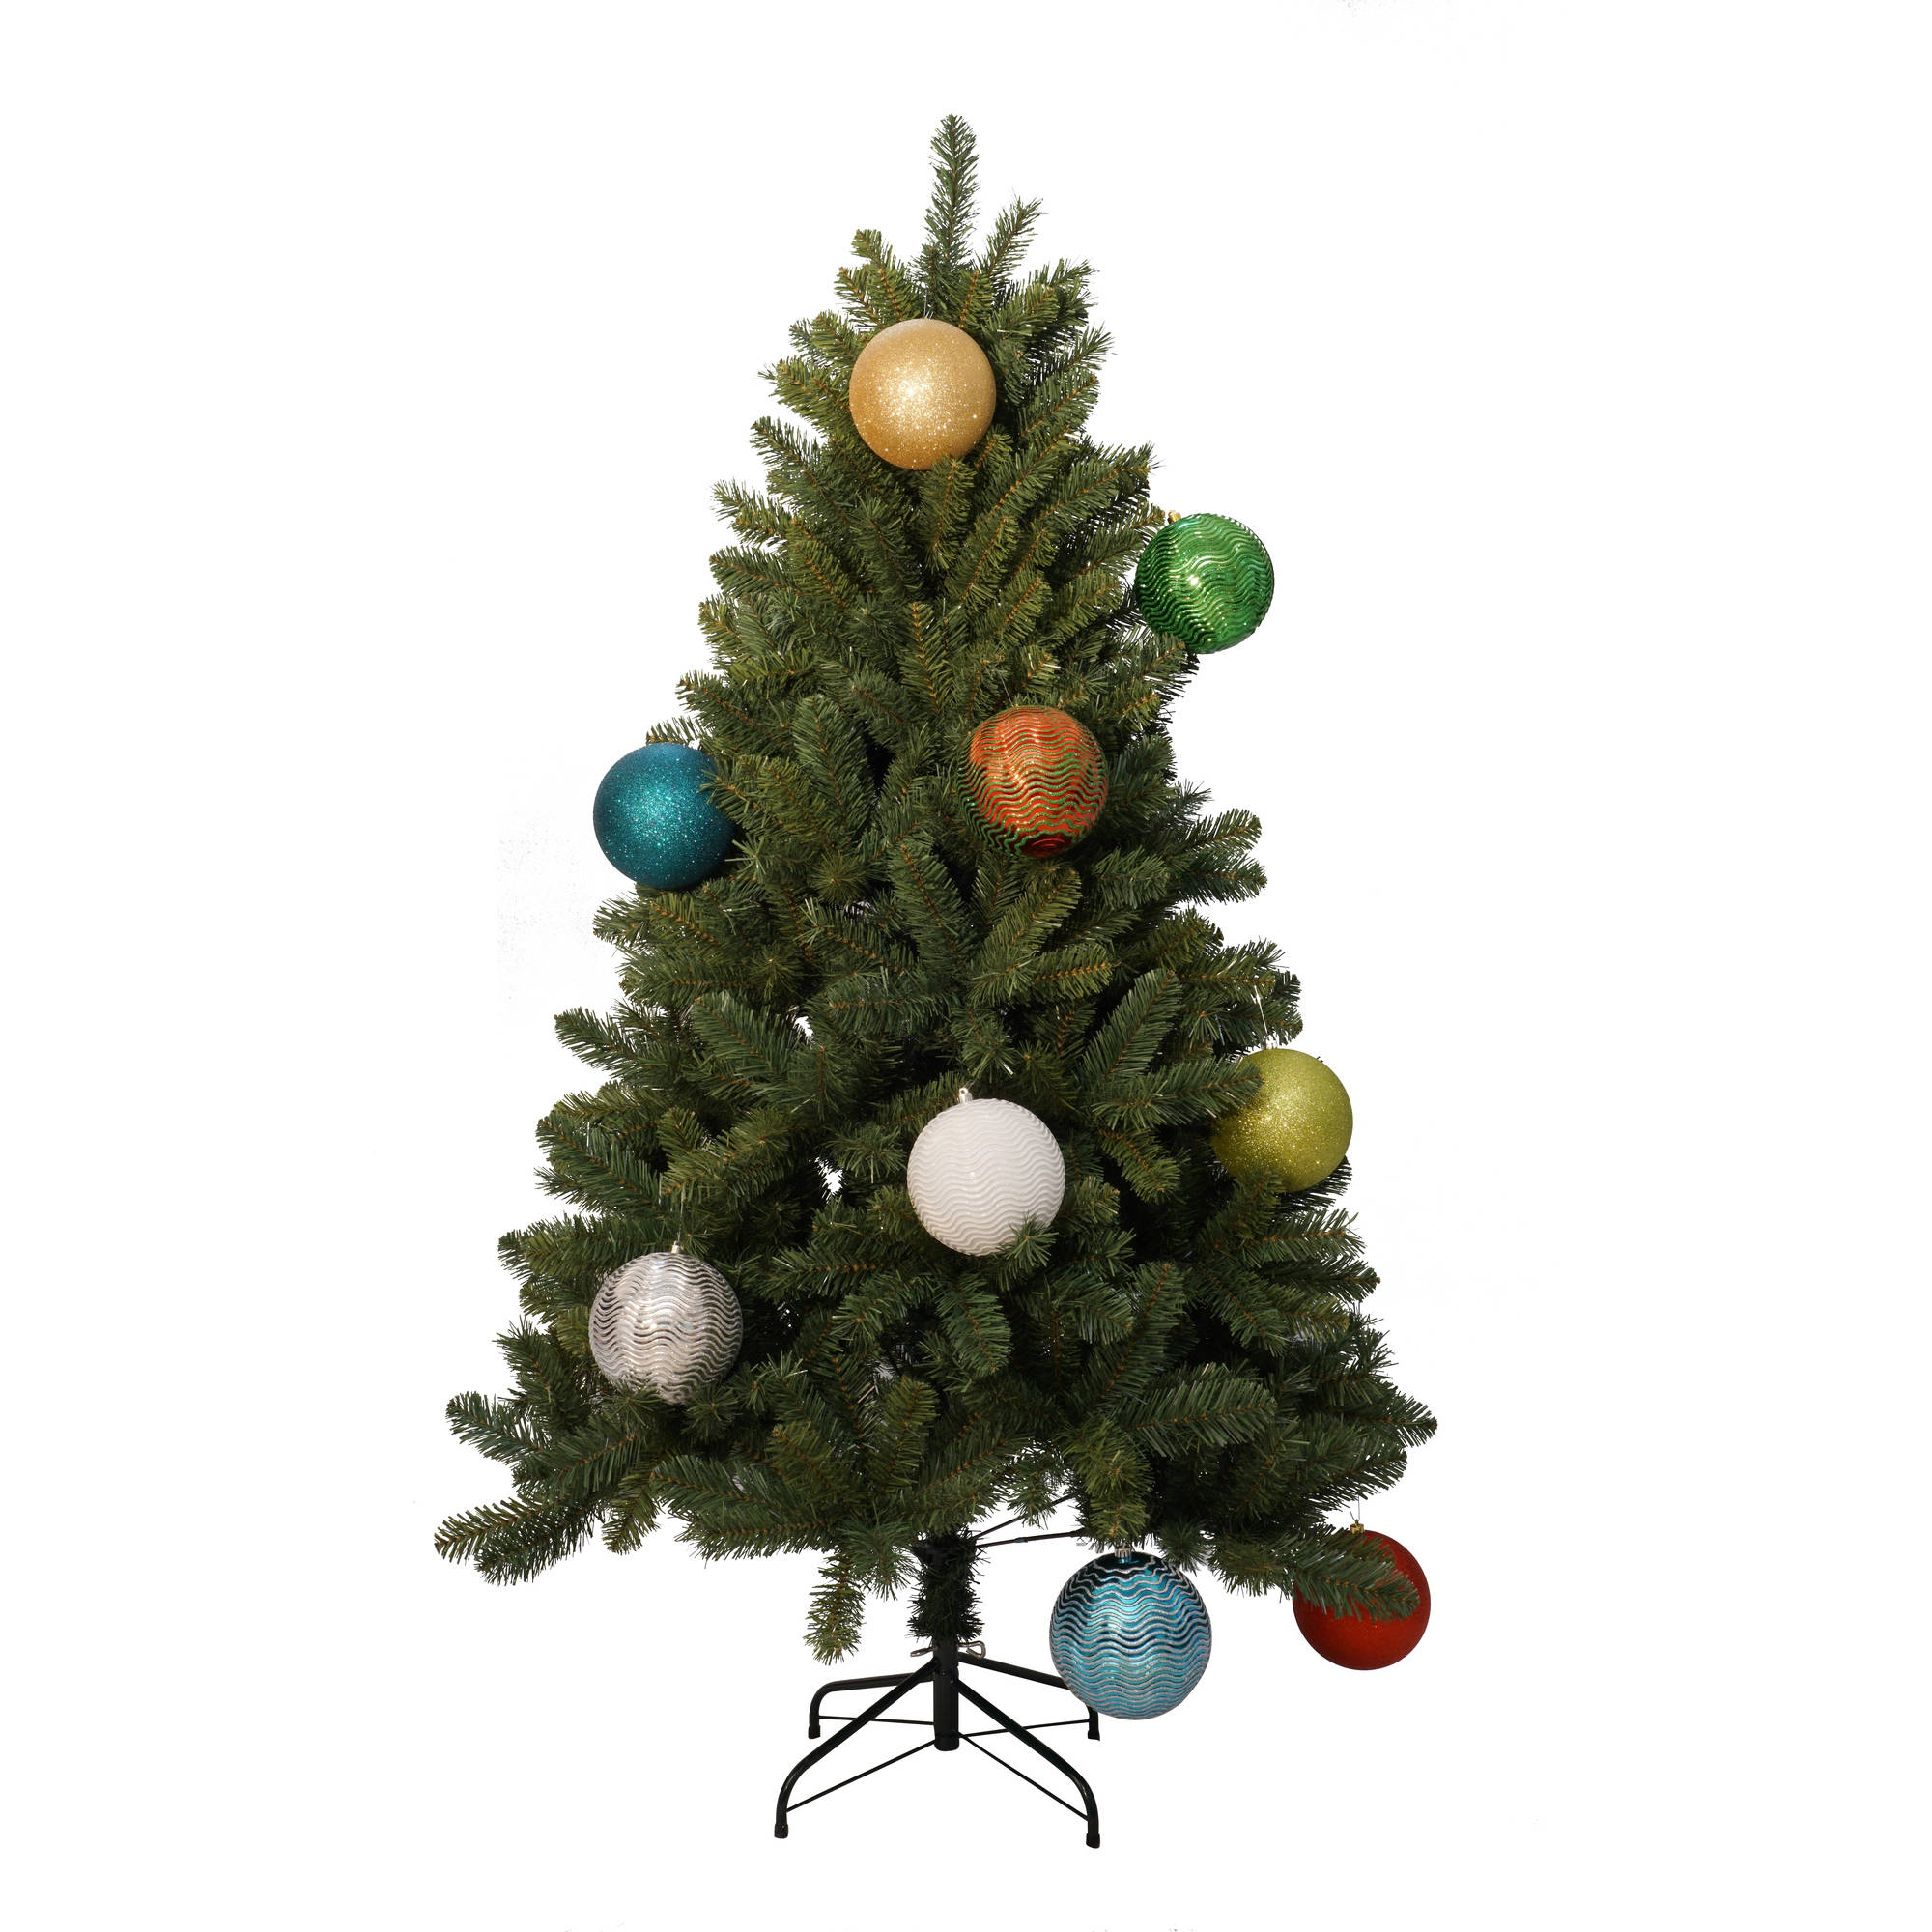 Holiday Time Christmas Ornaments Traditional 150mm Extra Large Shatterproof, Set of 3 - Walmart.com